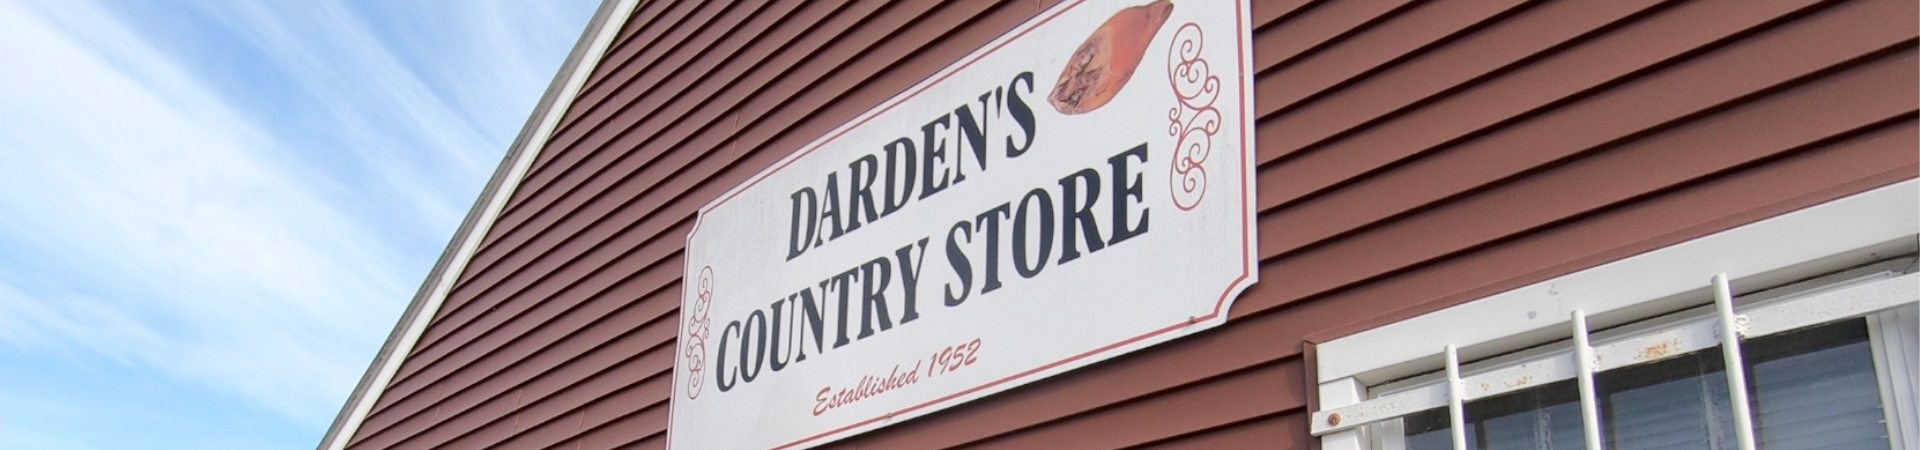 Dardens Country Store